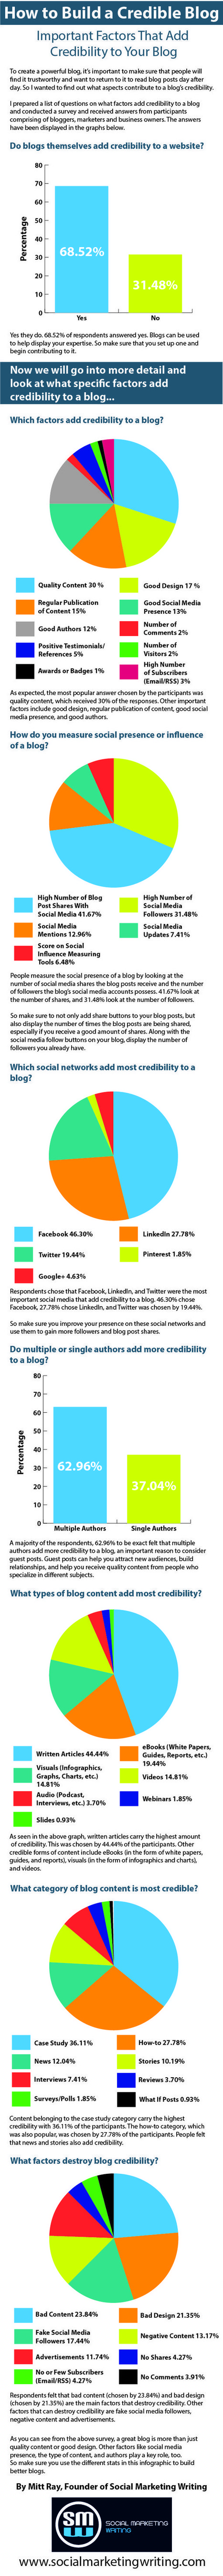 How to Build a Credible Blog that People Trust - Jeffbullas's Blog | Blogging | Scoop.it